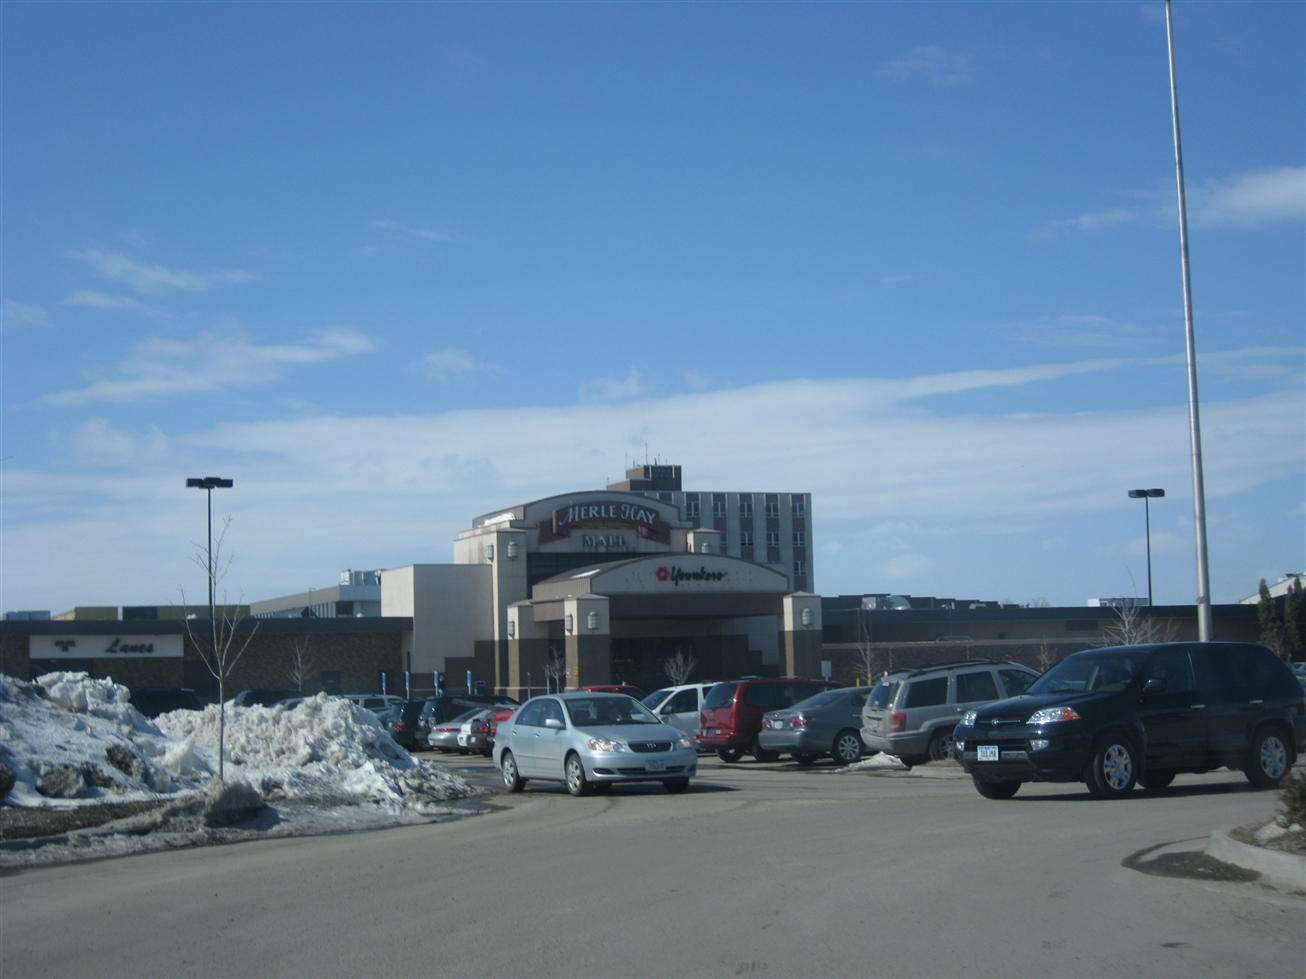 Merle Hay Mall main entrance in Des Moines, IA